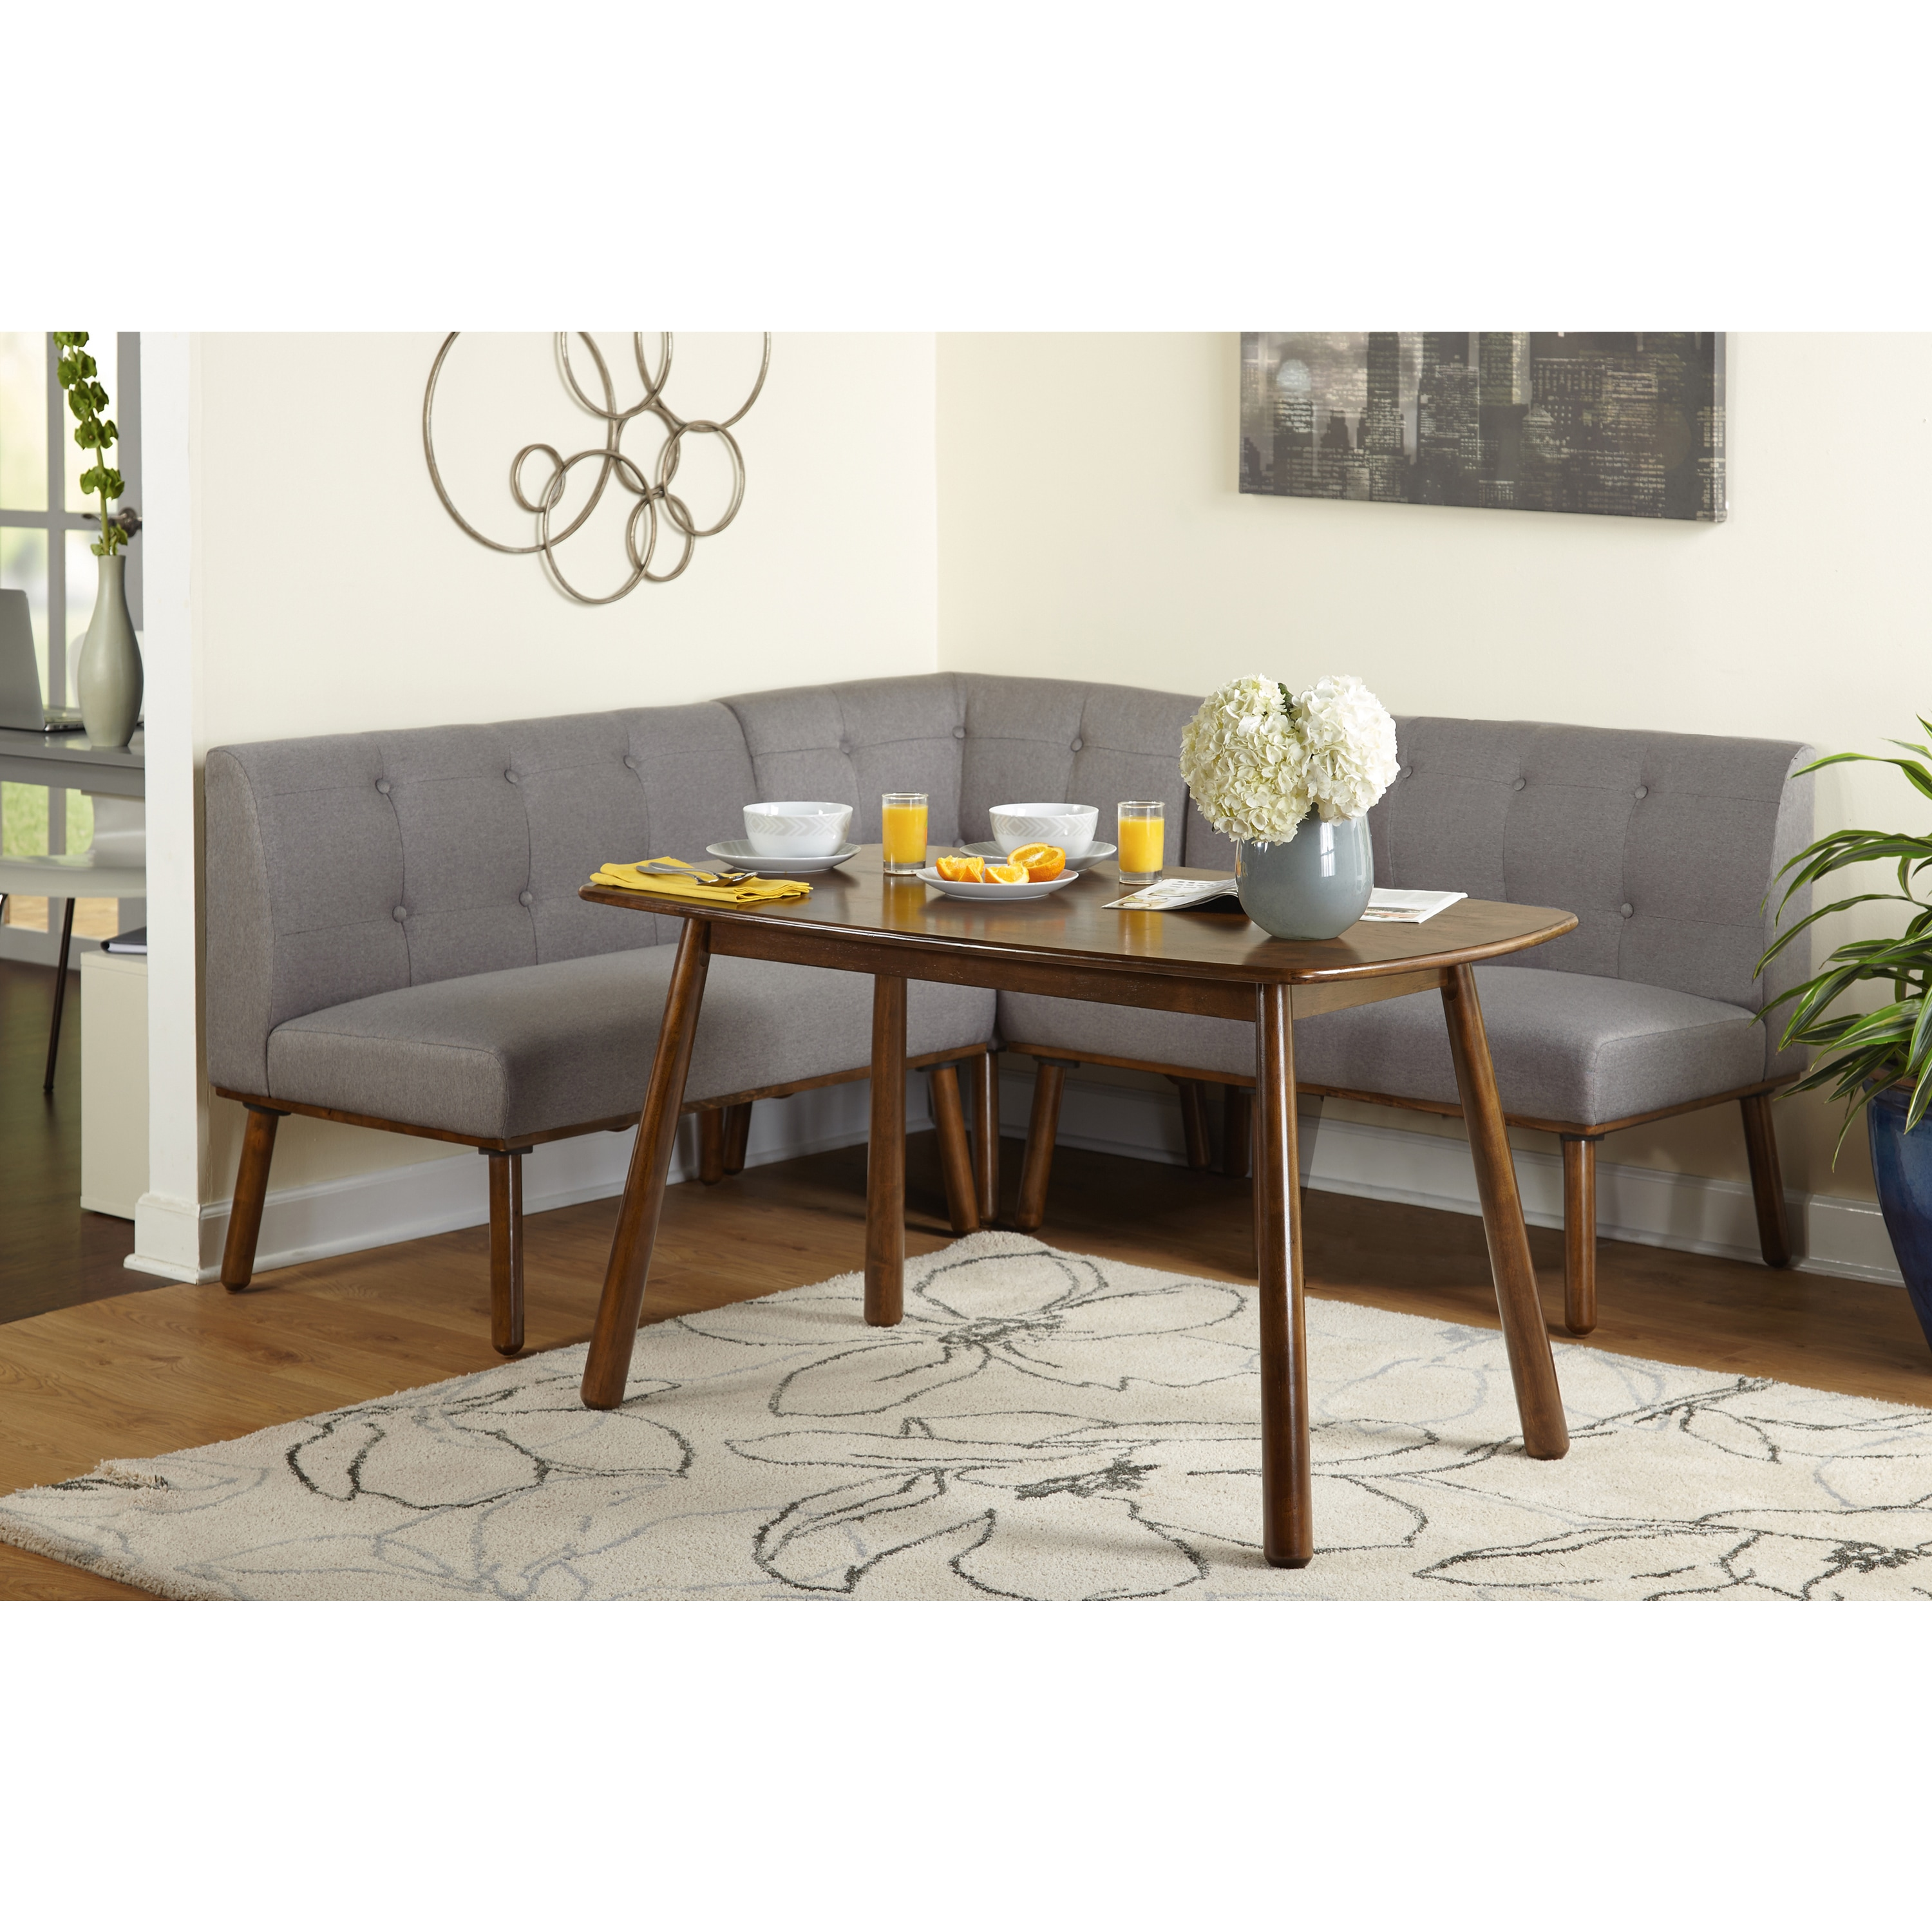 Wonderful Simple Living 4 Piece Playmate Nook Dining Set   Free Shipping Today    Overstock   20123257